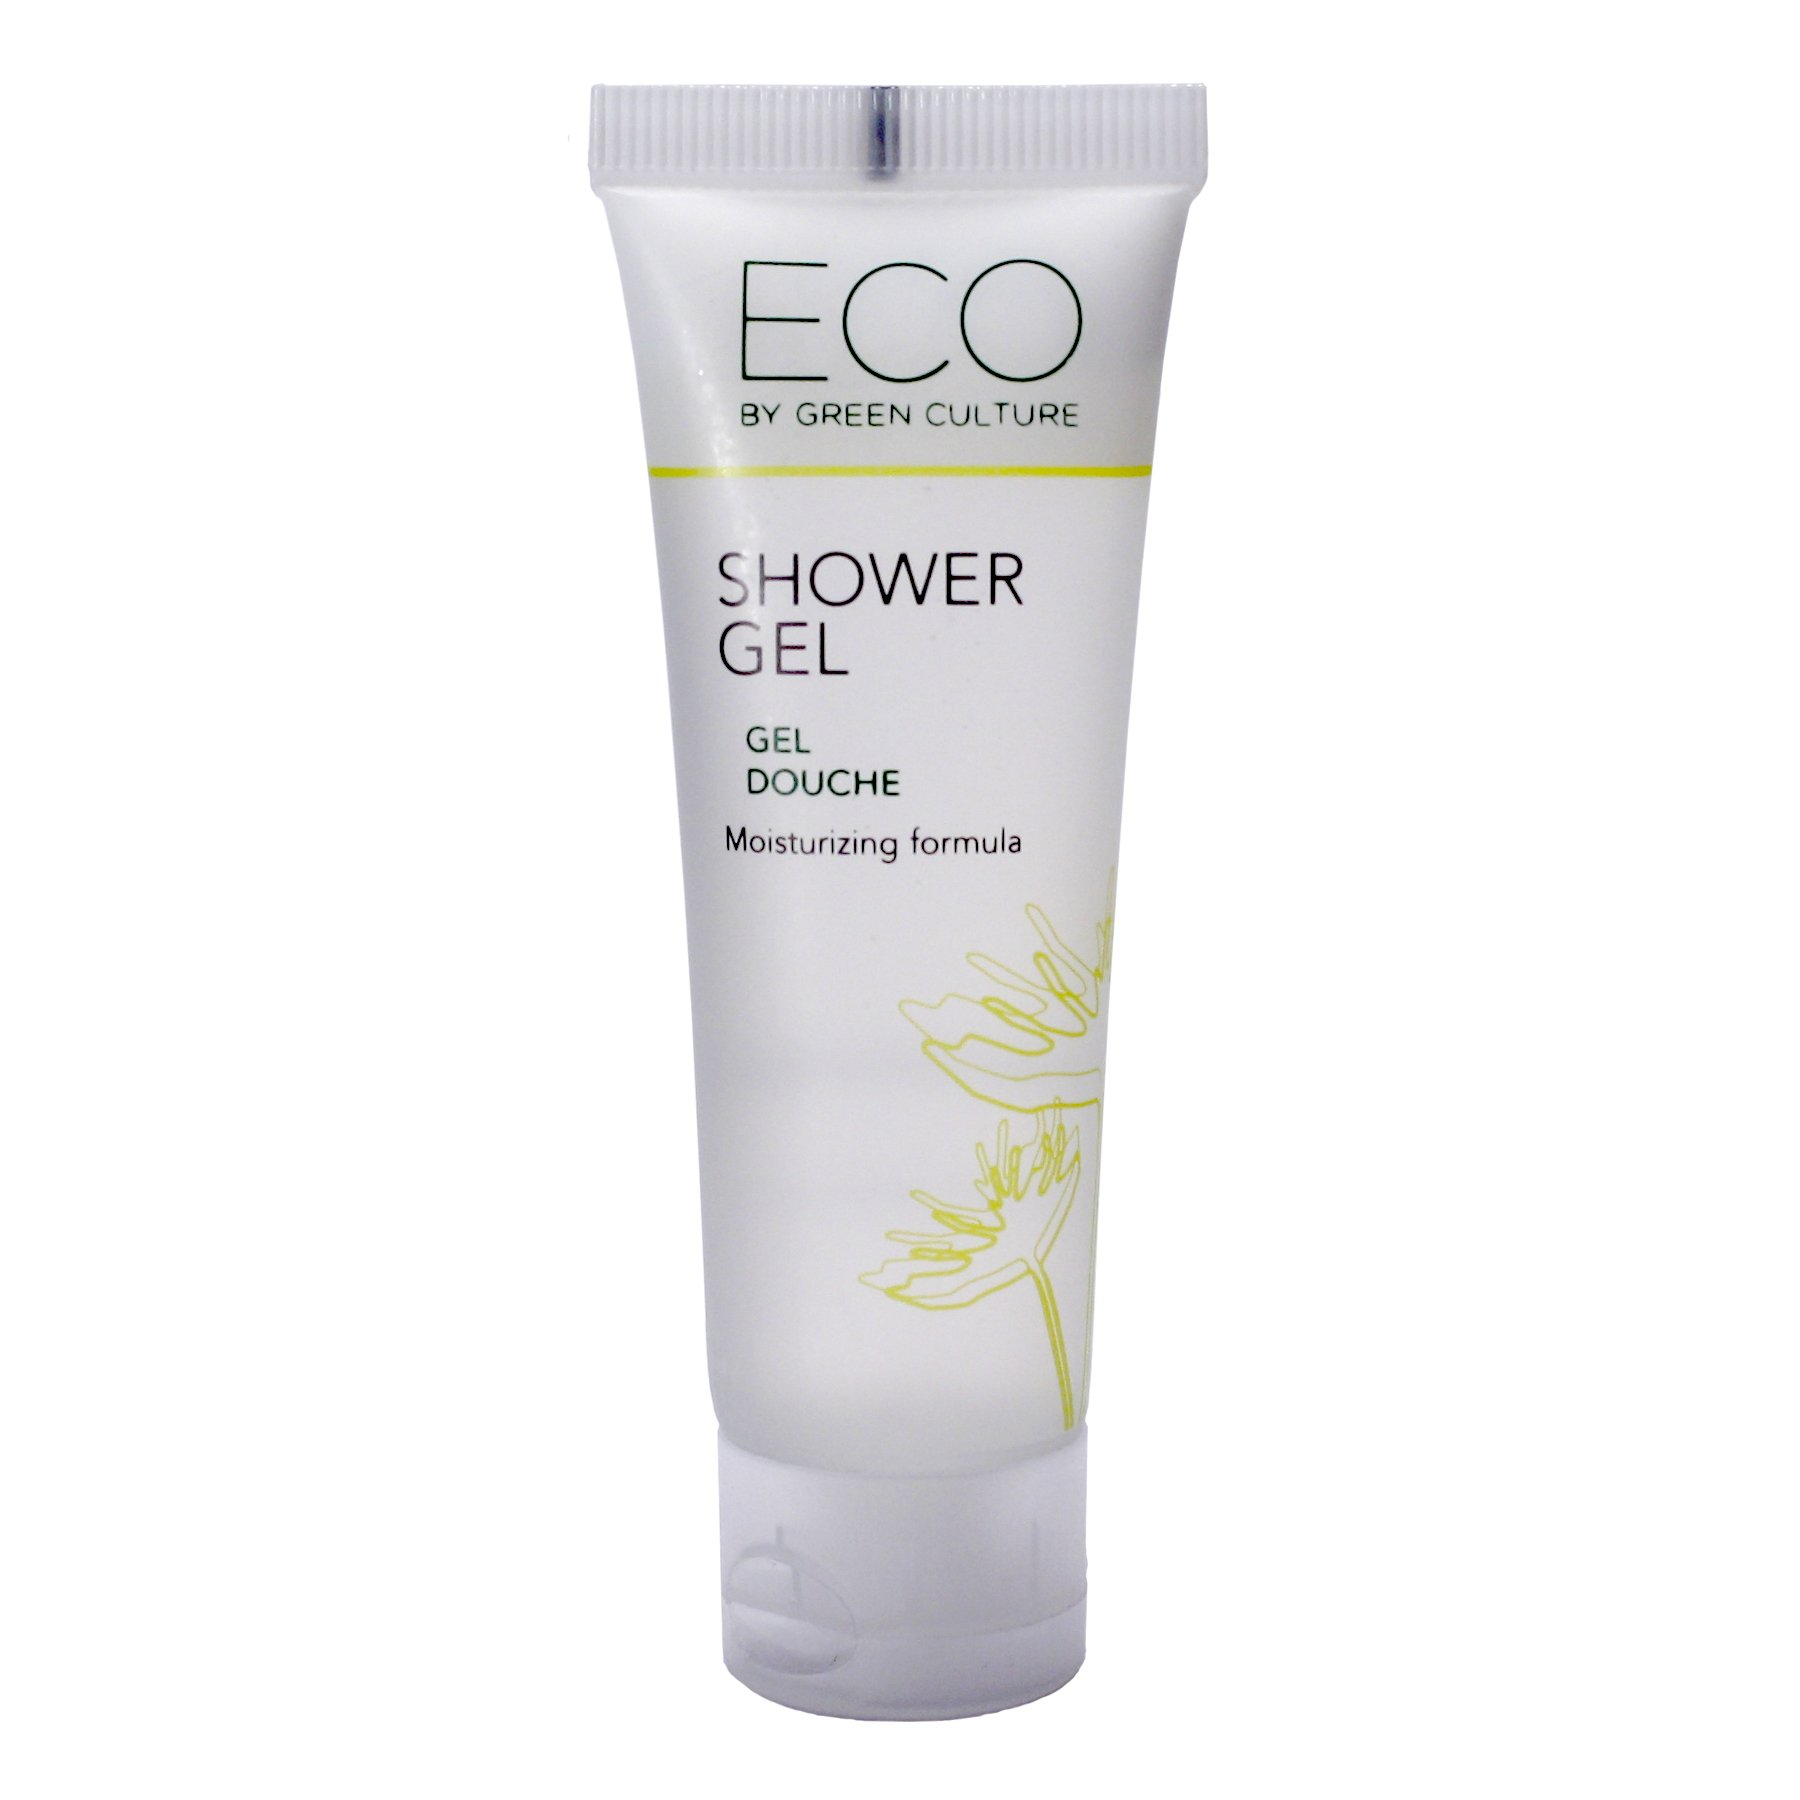 Eco by Green Culture Hotel Amenities Travel Sized Bath & Shower Gel 30ml (288 Pack)